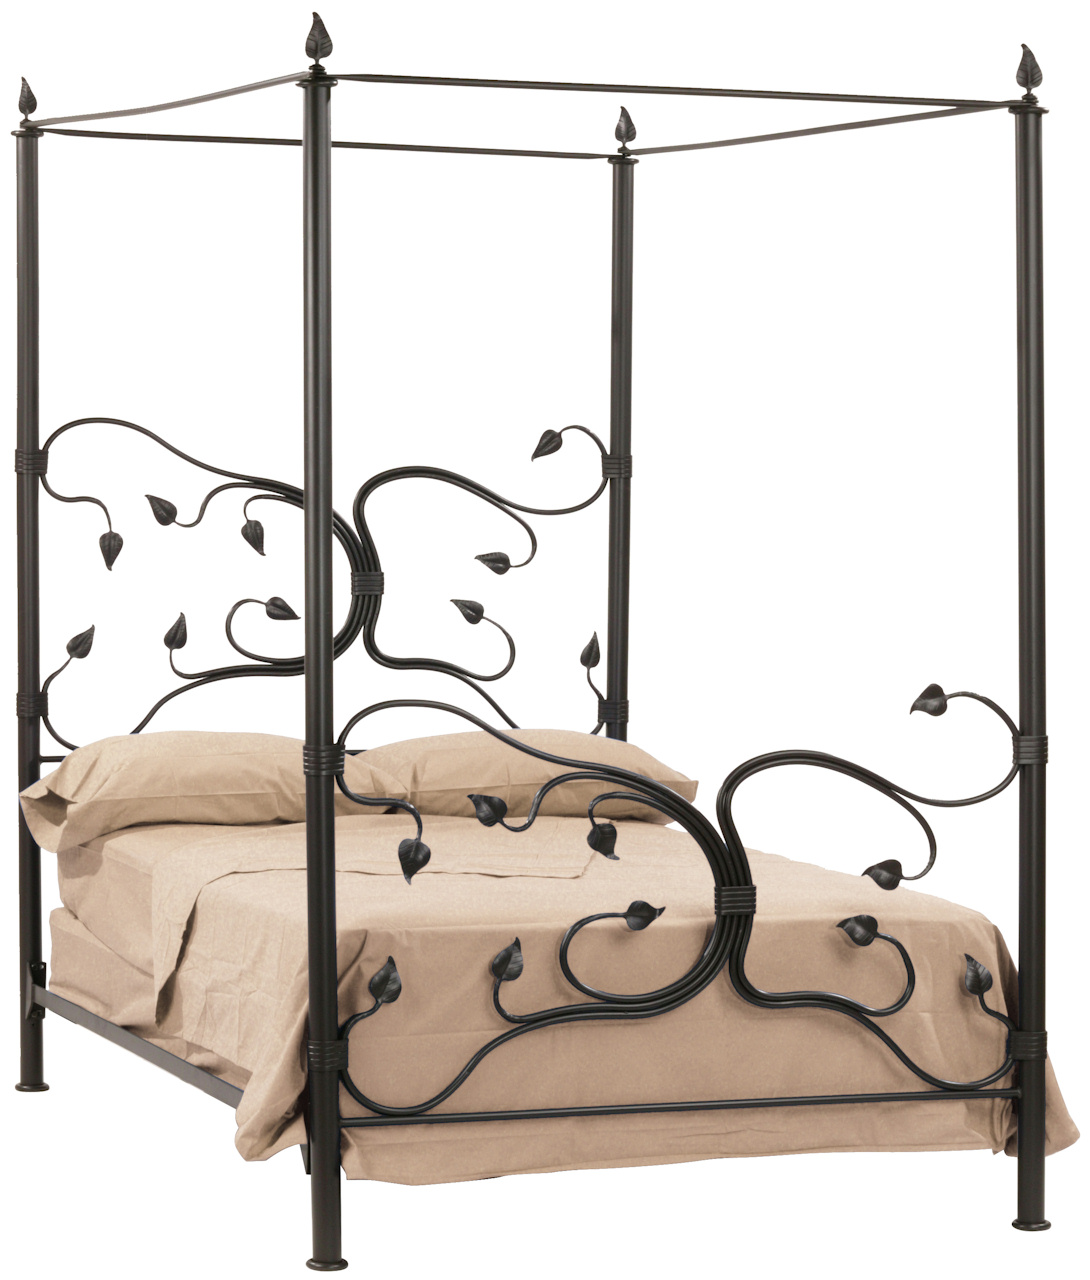 Iron Canopy Bed Frame | HomesFeed